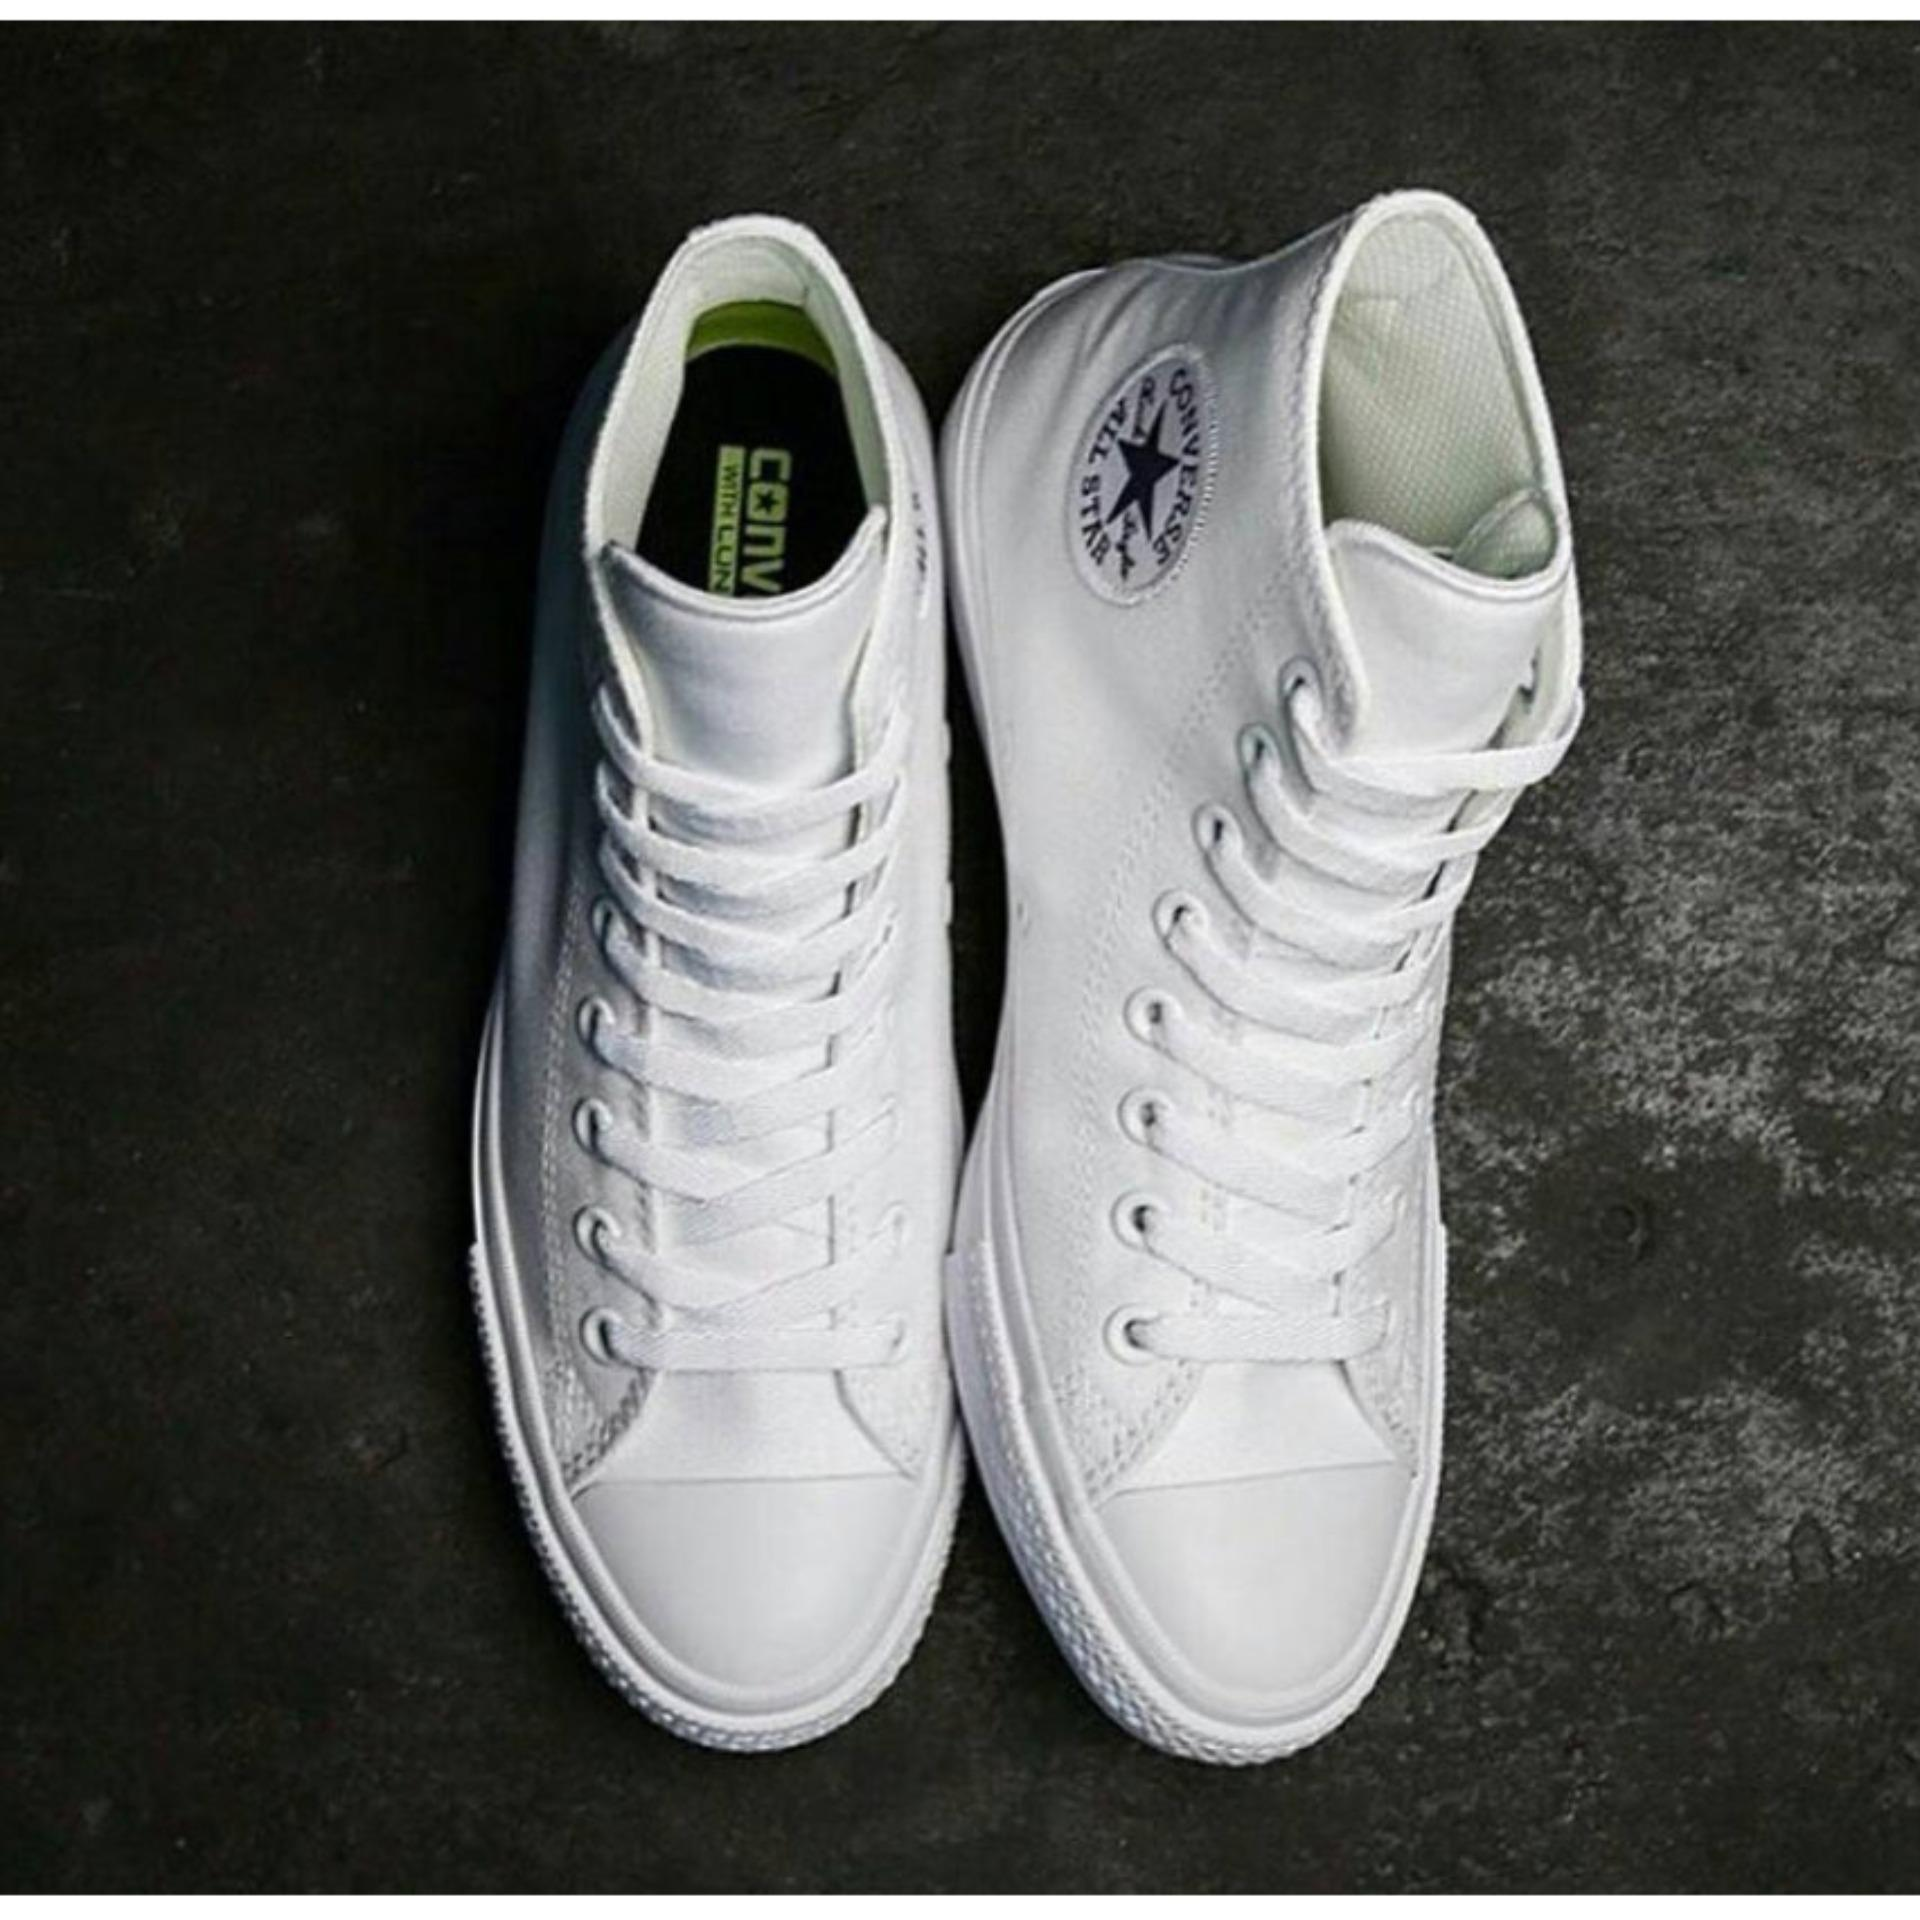 Converse high CT white